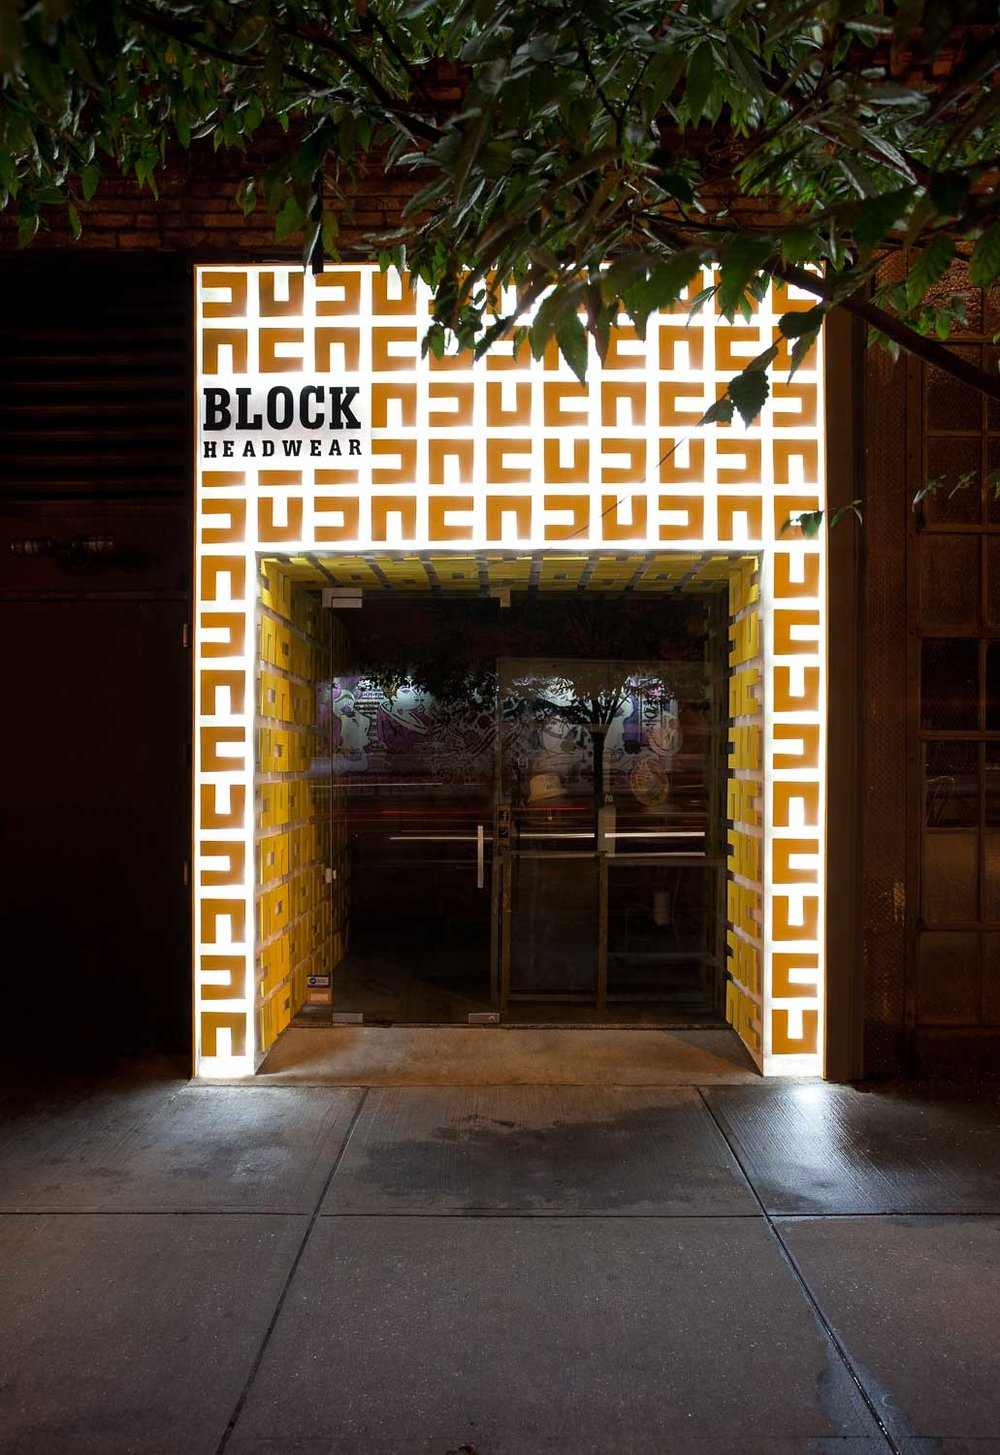 Block Headwear Storefront Design